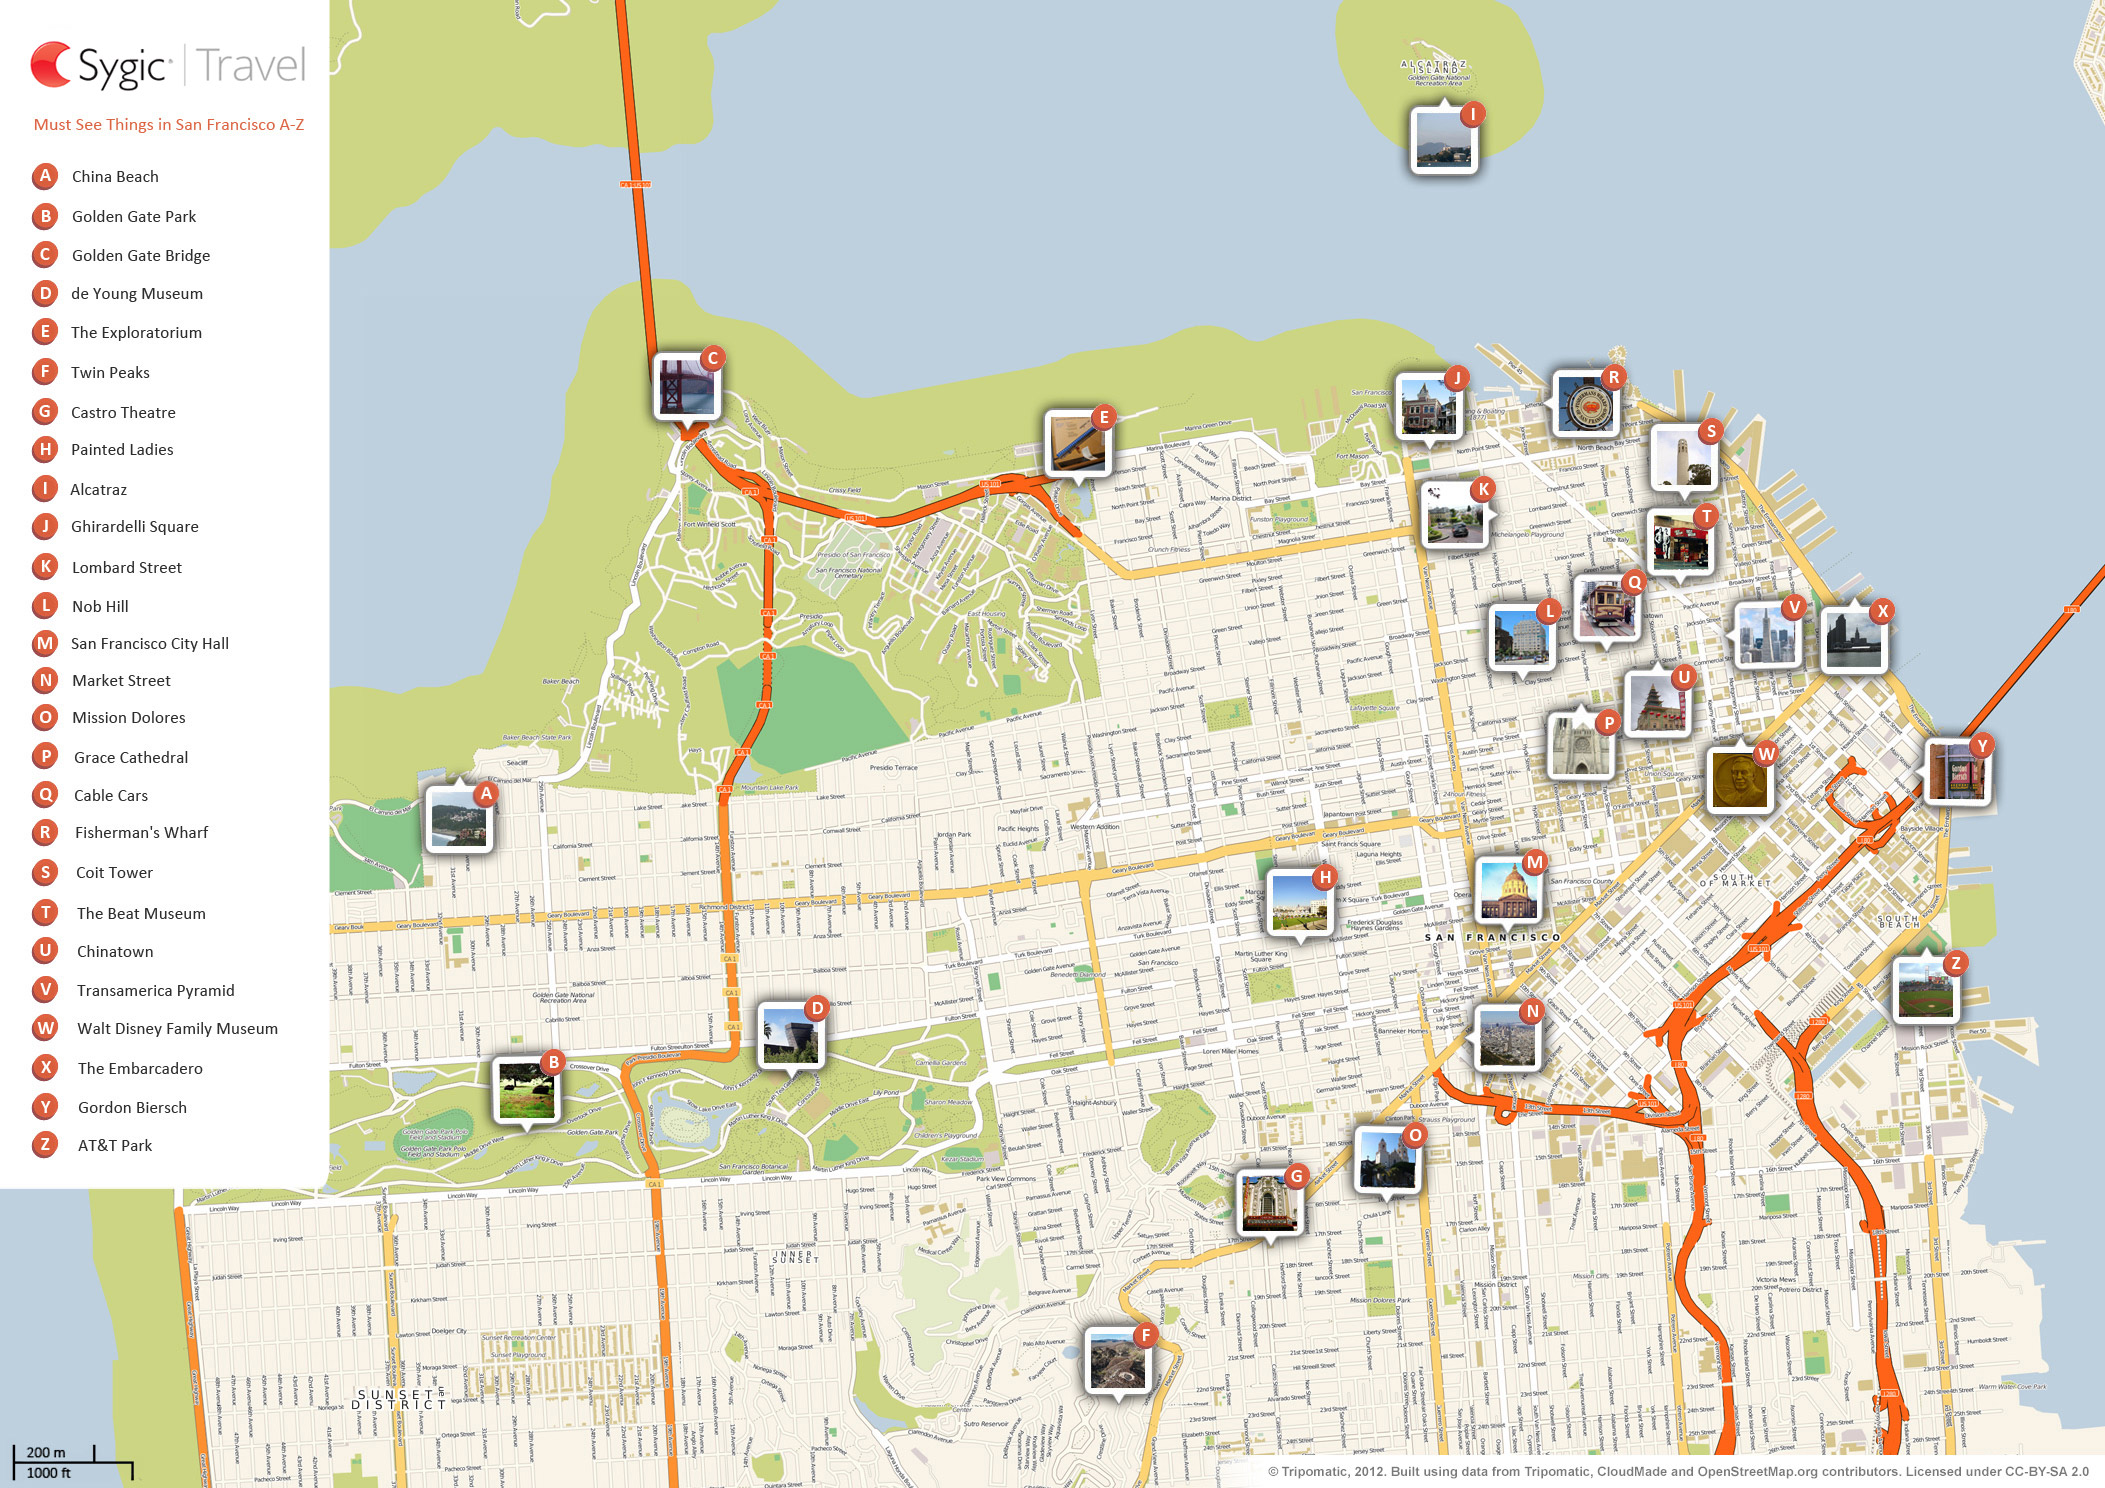 San Francisco Attractions Map San Francisco Printable Tourist Map | Sygic Travel